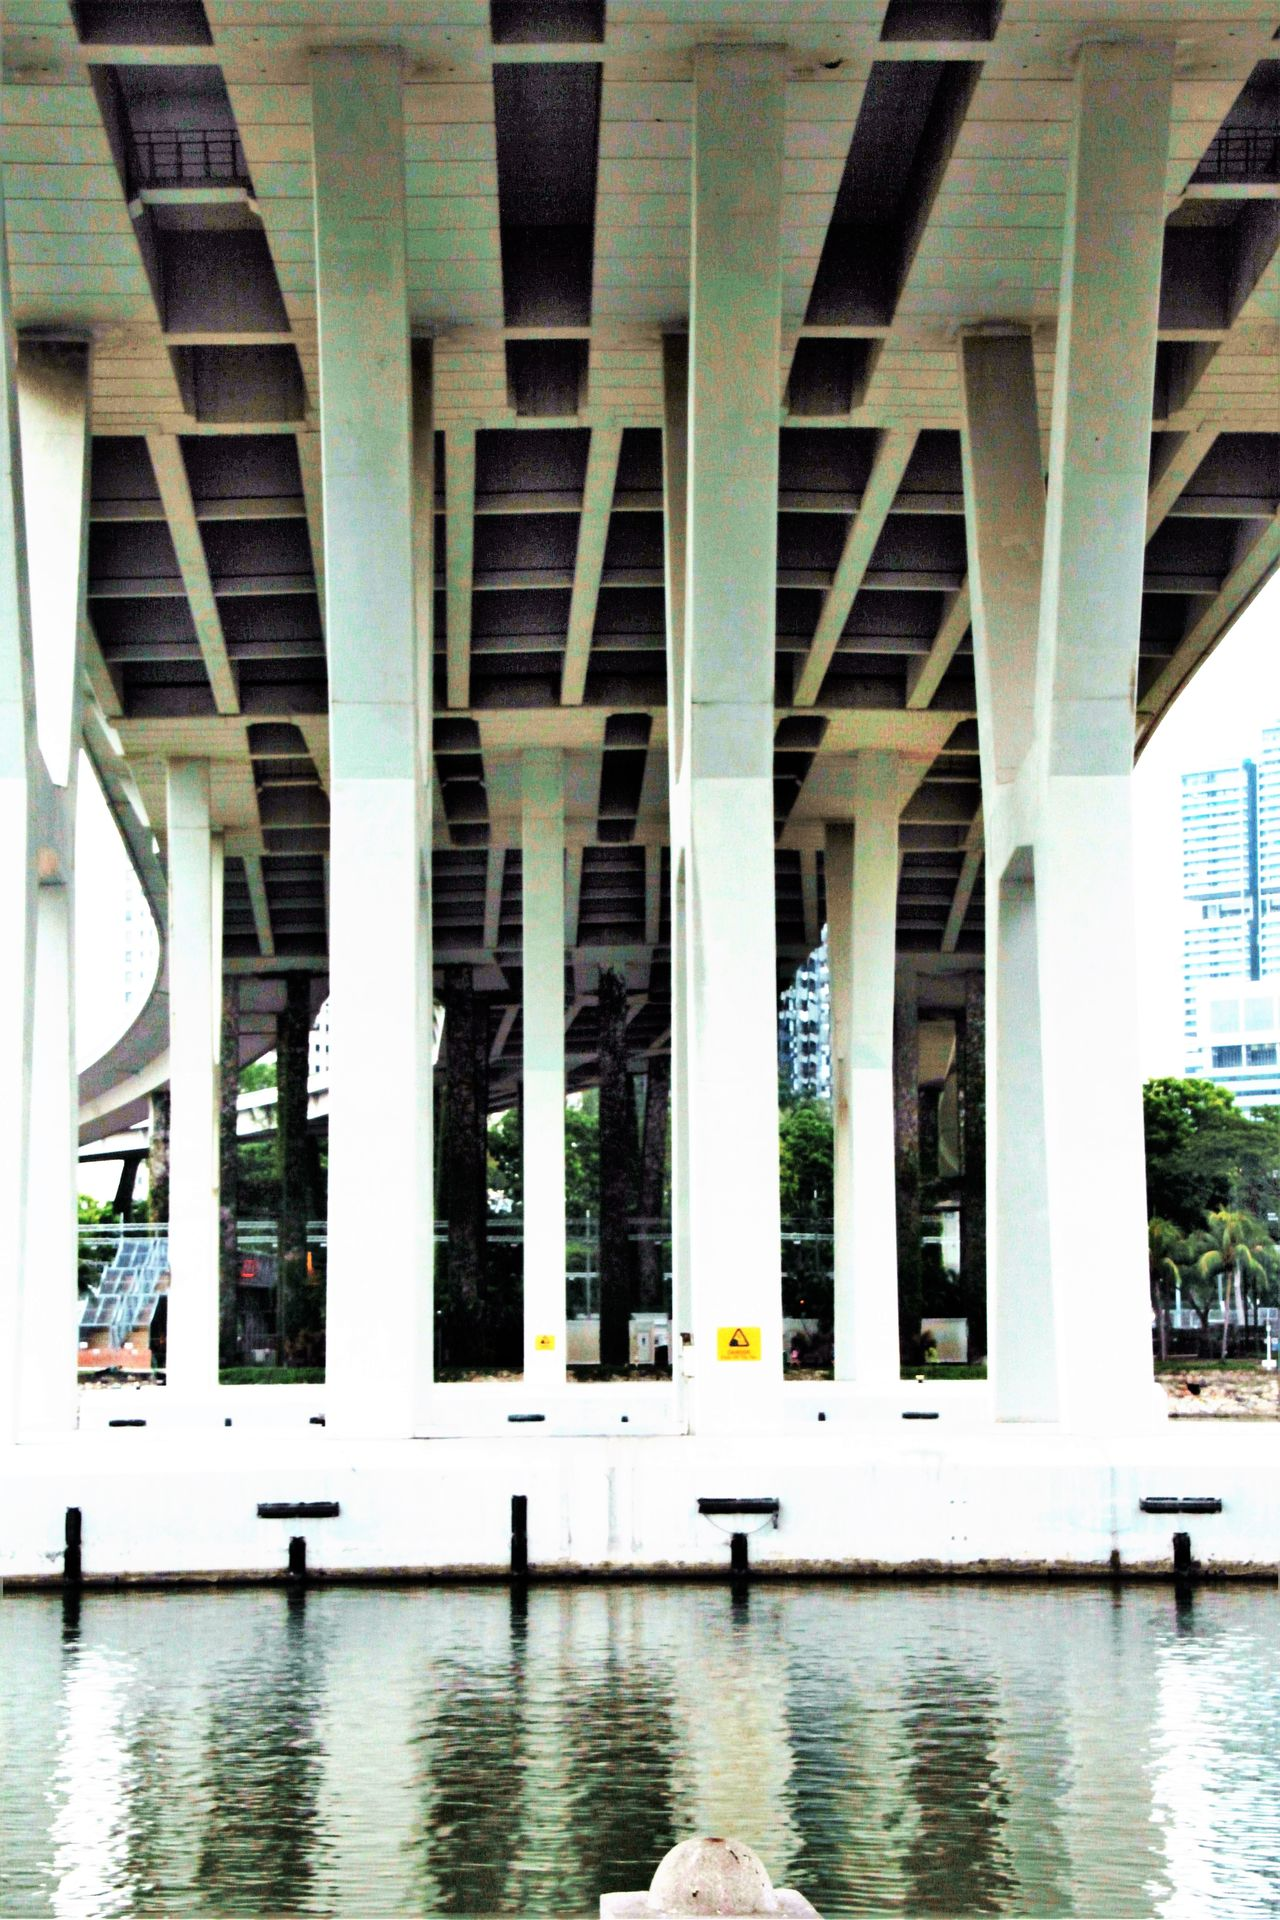 Underside of bridge over Marina Reservoir, Singapore Architectural Column Architectural Feature Architecture_collection Bridge - Man Made Structure Bridge Column Bridge Over Water Built Structure City Life Reflection SUPPORT